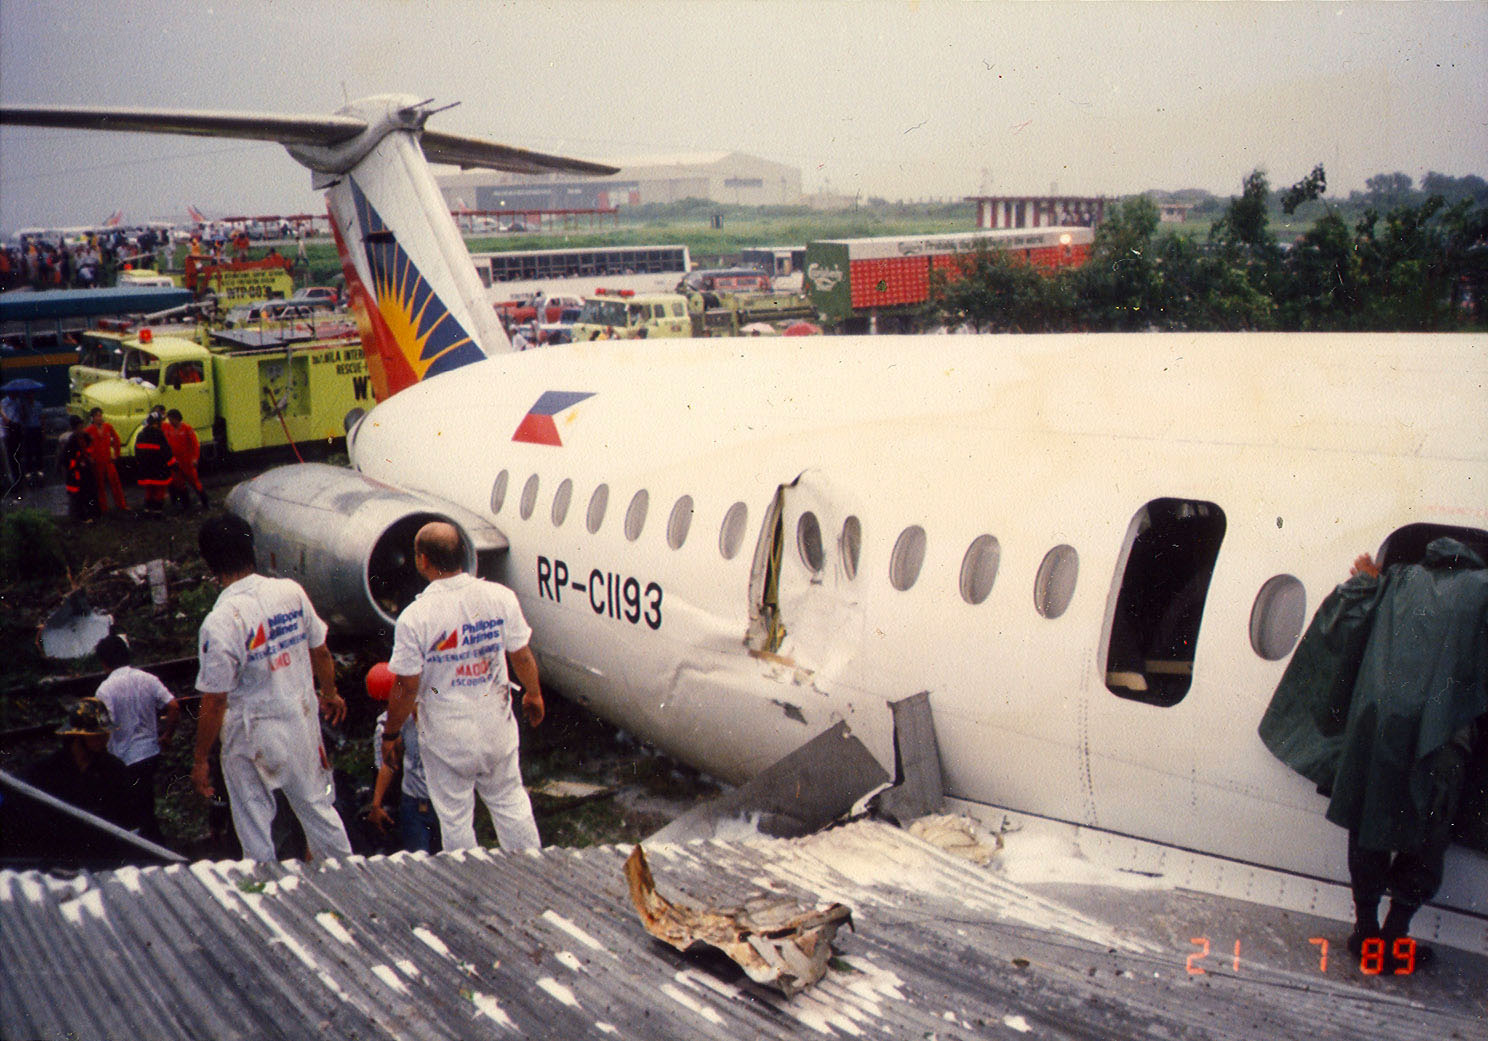 Philippine Airlines Accident RP C1193 BAC 111 516FP 21 JUL 1989 05